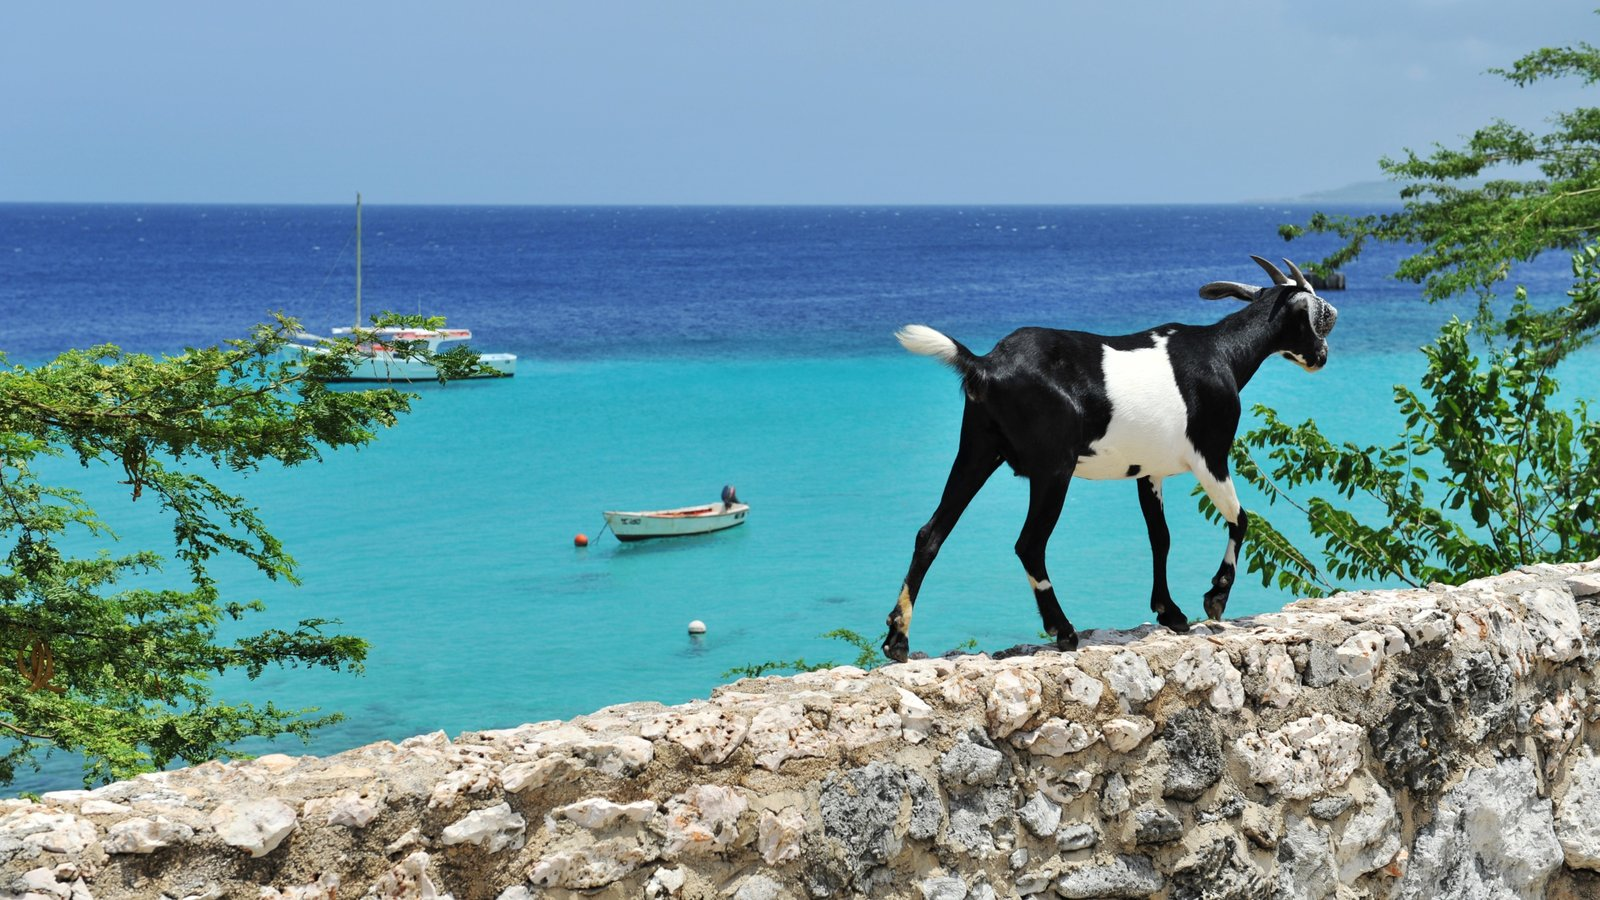 Curacao showing general coastal views and animals